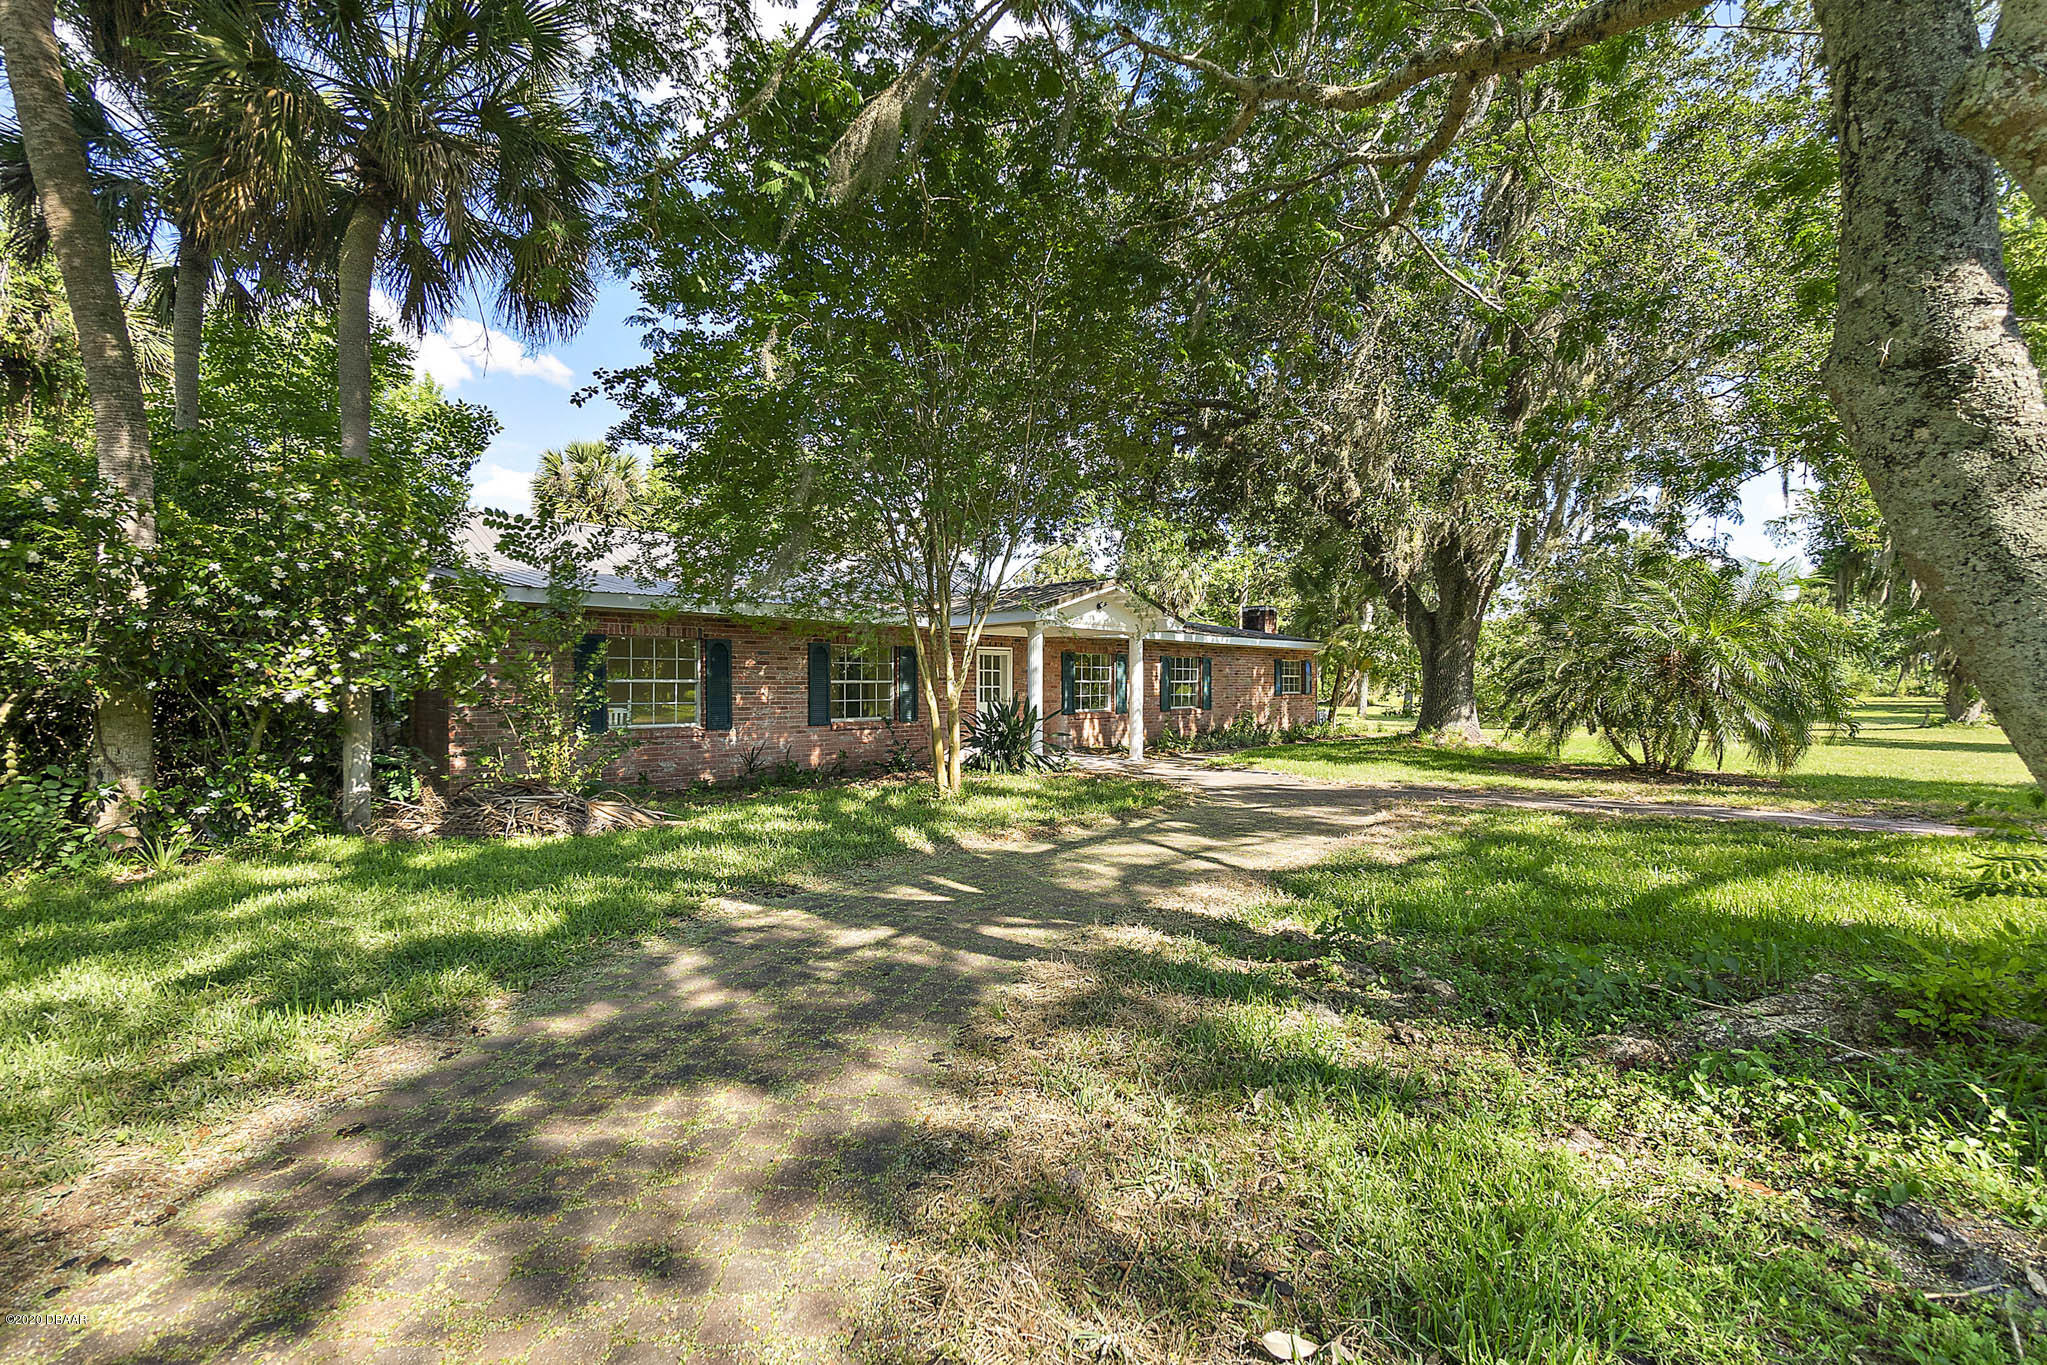 6869 Highway 100 Bunnell - 46